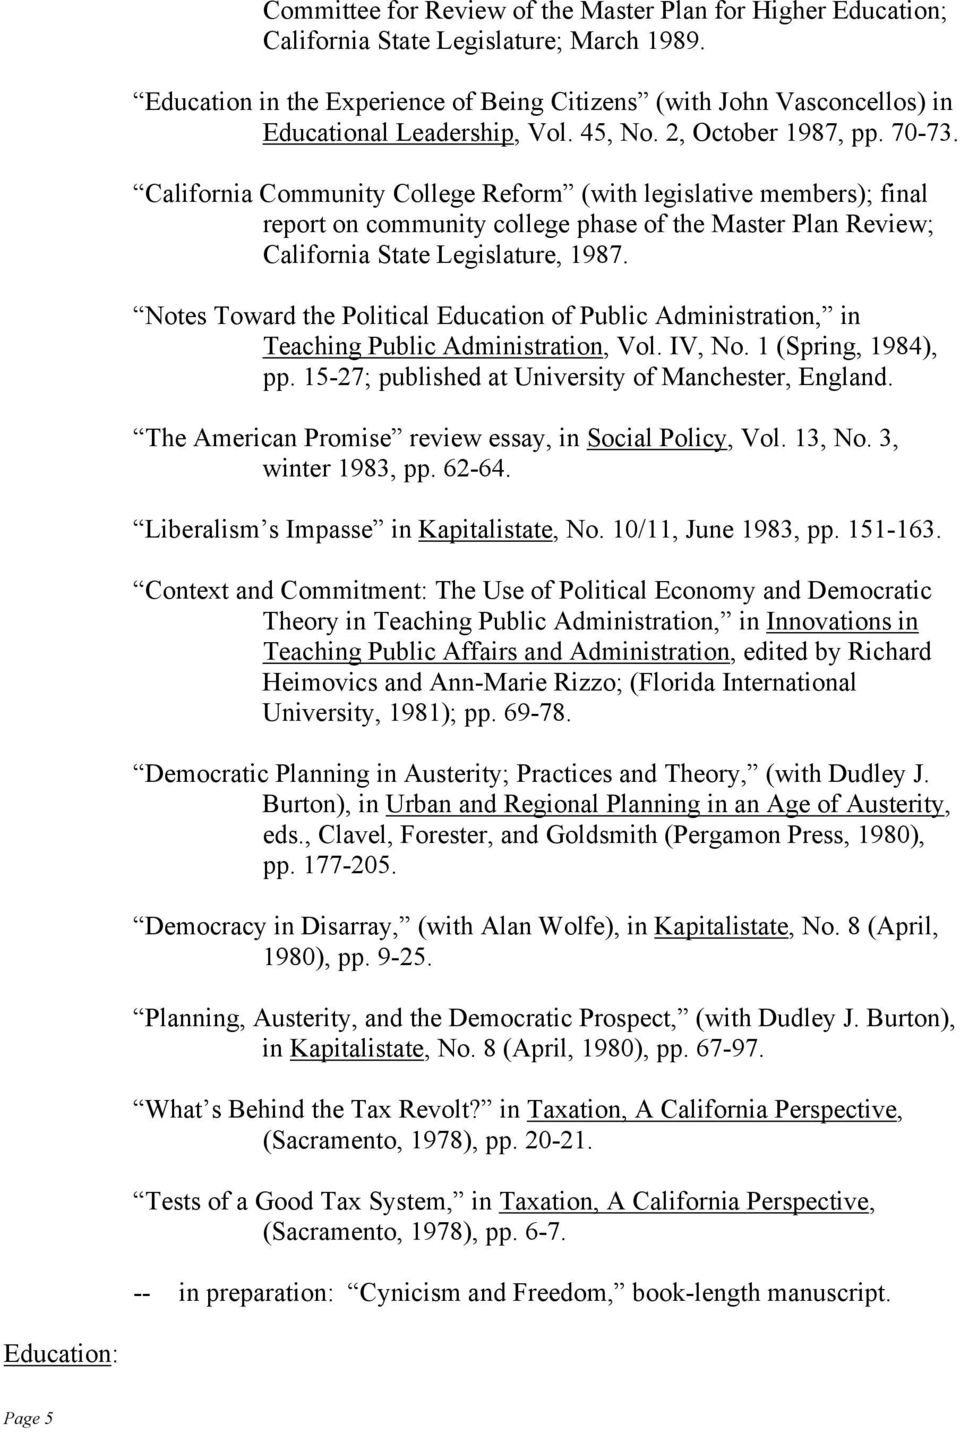 California Community College Reform (with legislative members); final report on community college phase of the Master Plan Review; California State Legislature, 1987.